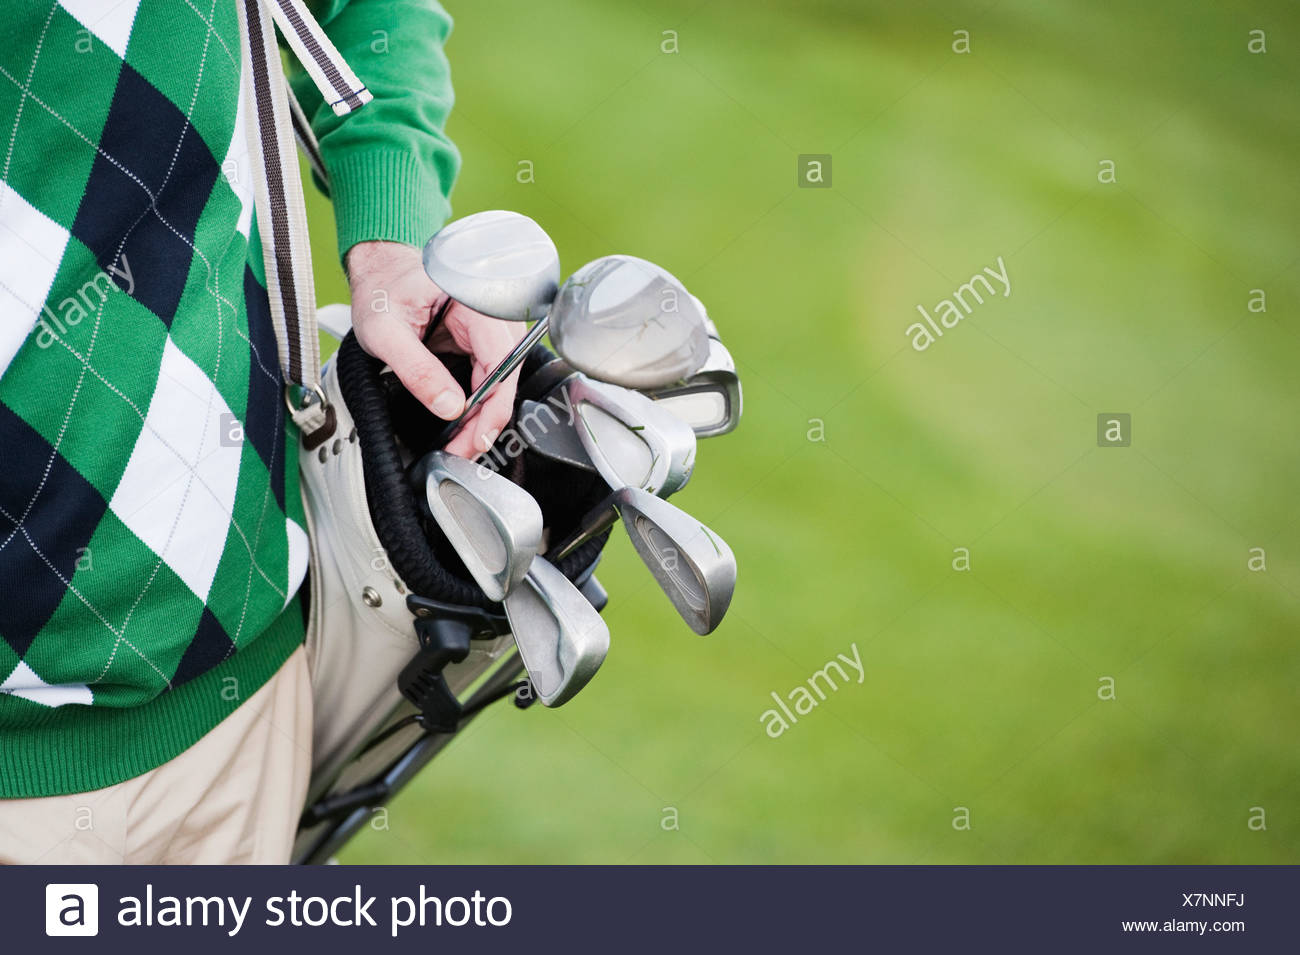 Italy, Kastelruth, Mature man with carrying golf bag, close up Stock Photo